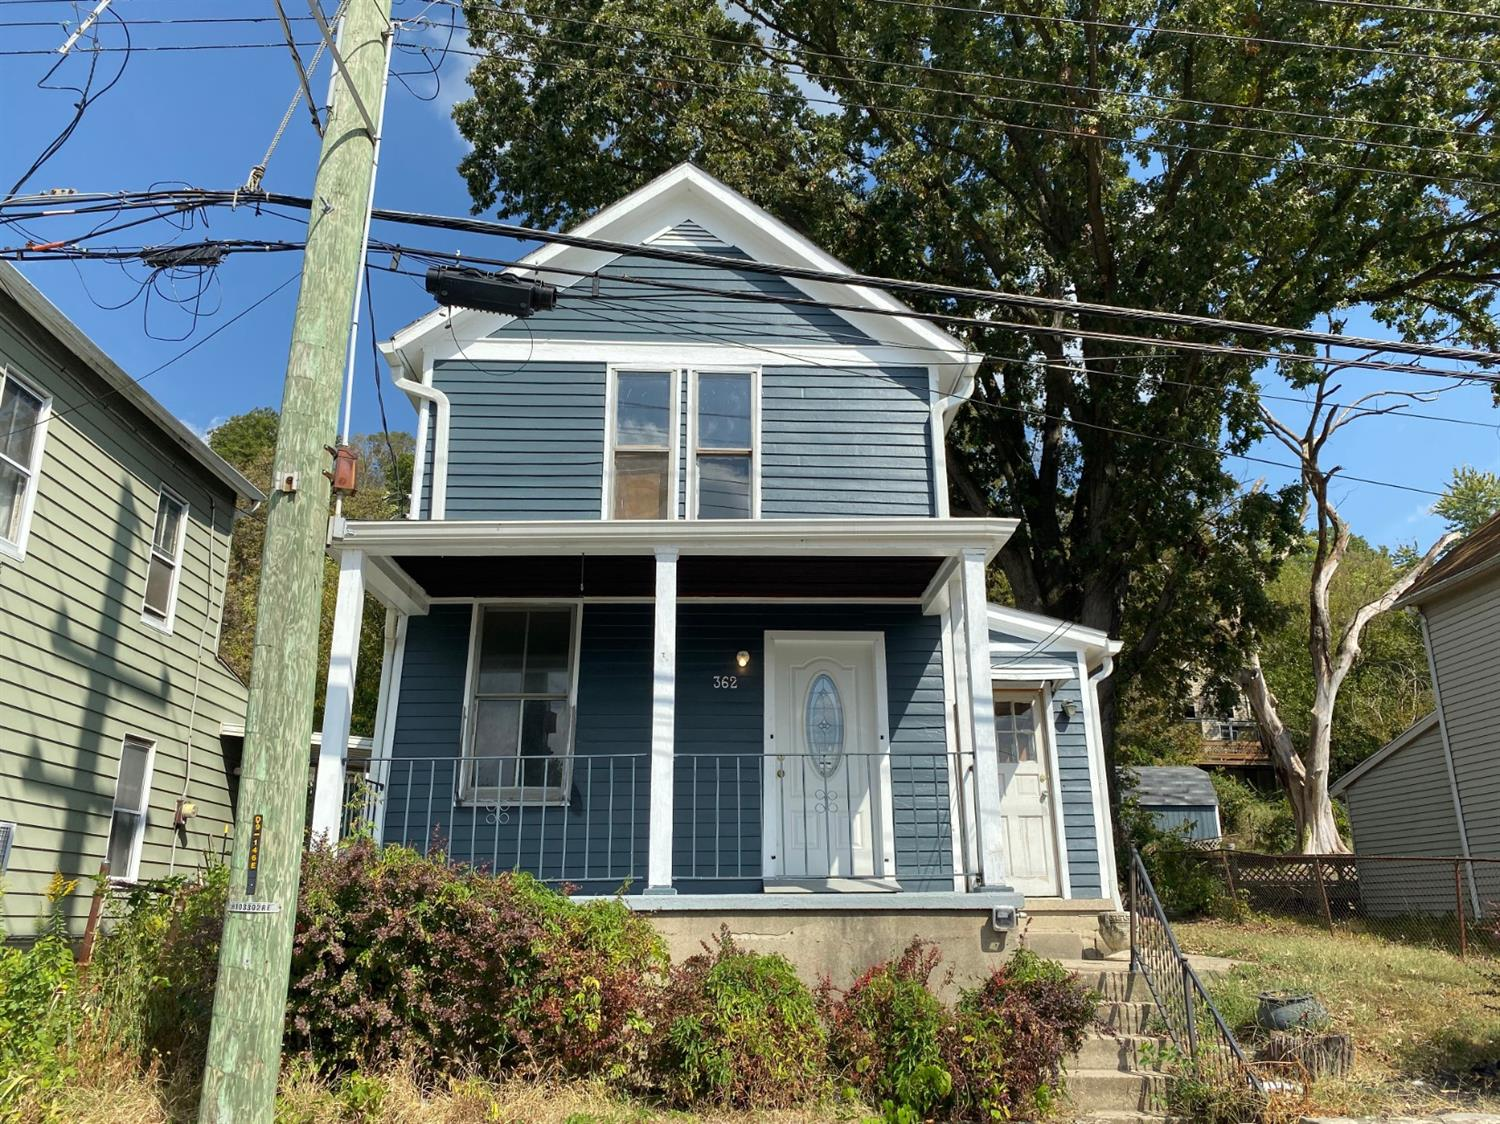 362 River Rd Addyston, OH